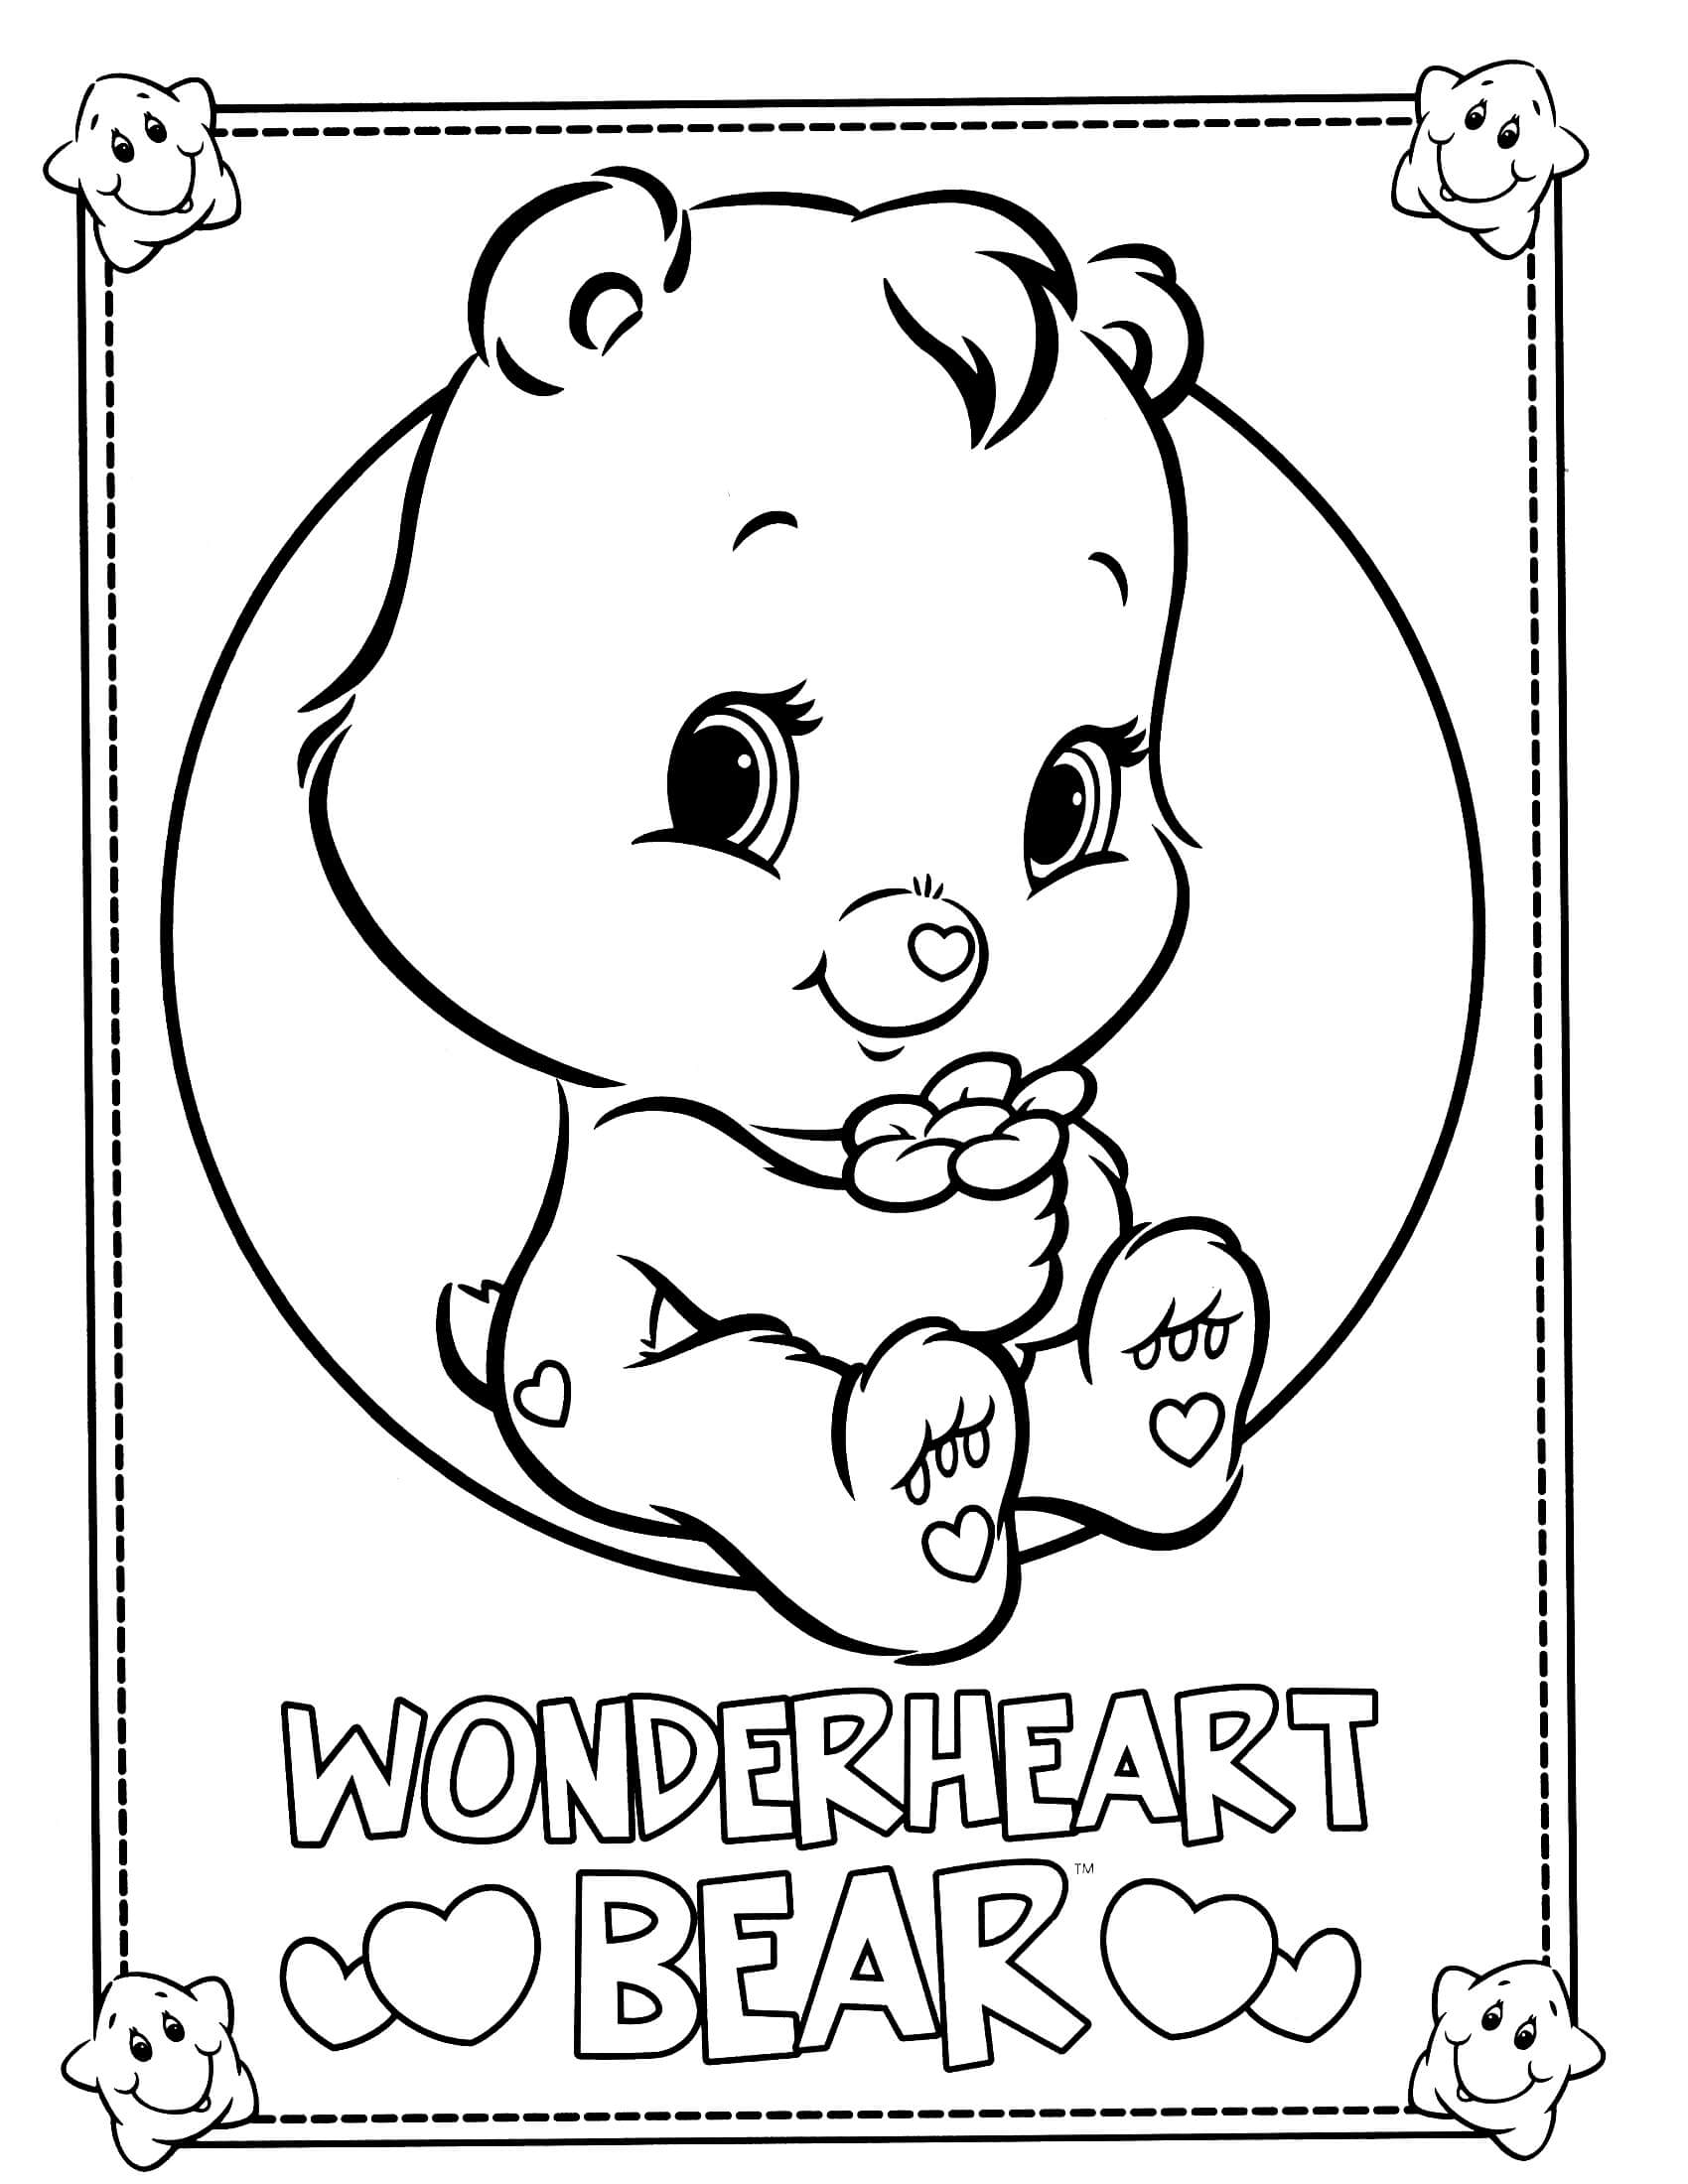 strawberry shortcake coloring pages - care bears coloring page 34